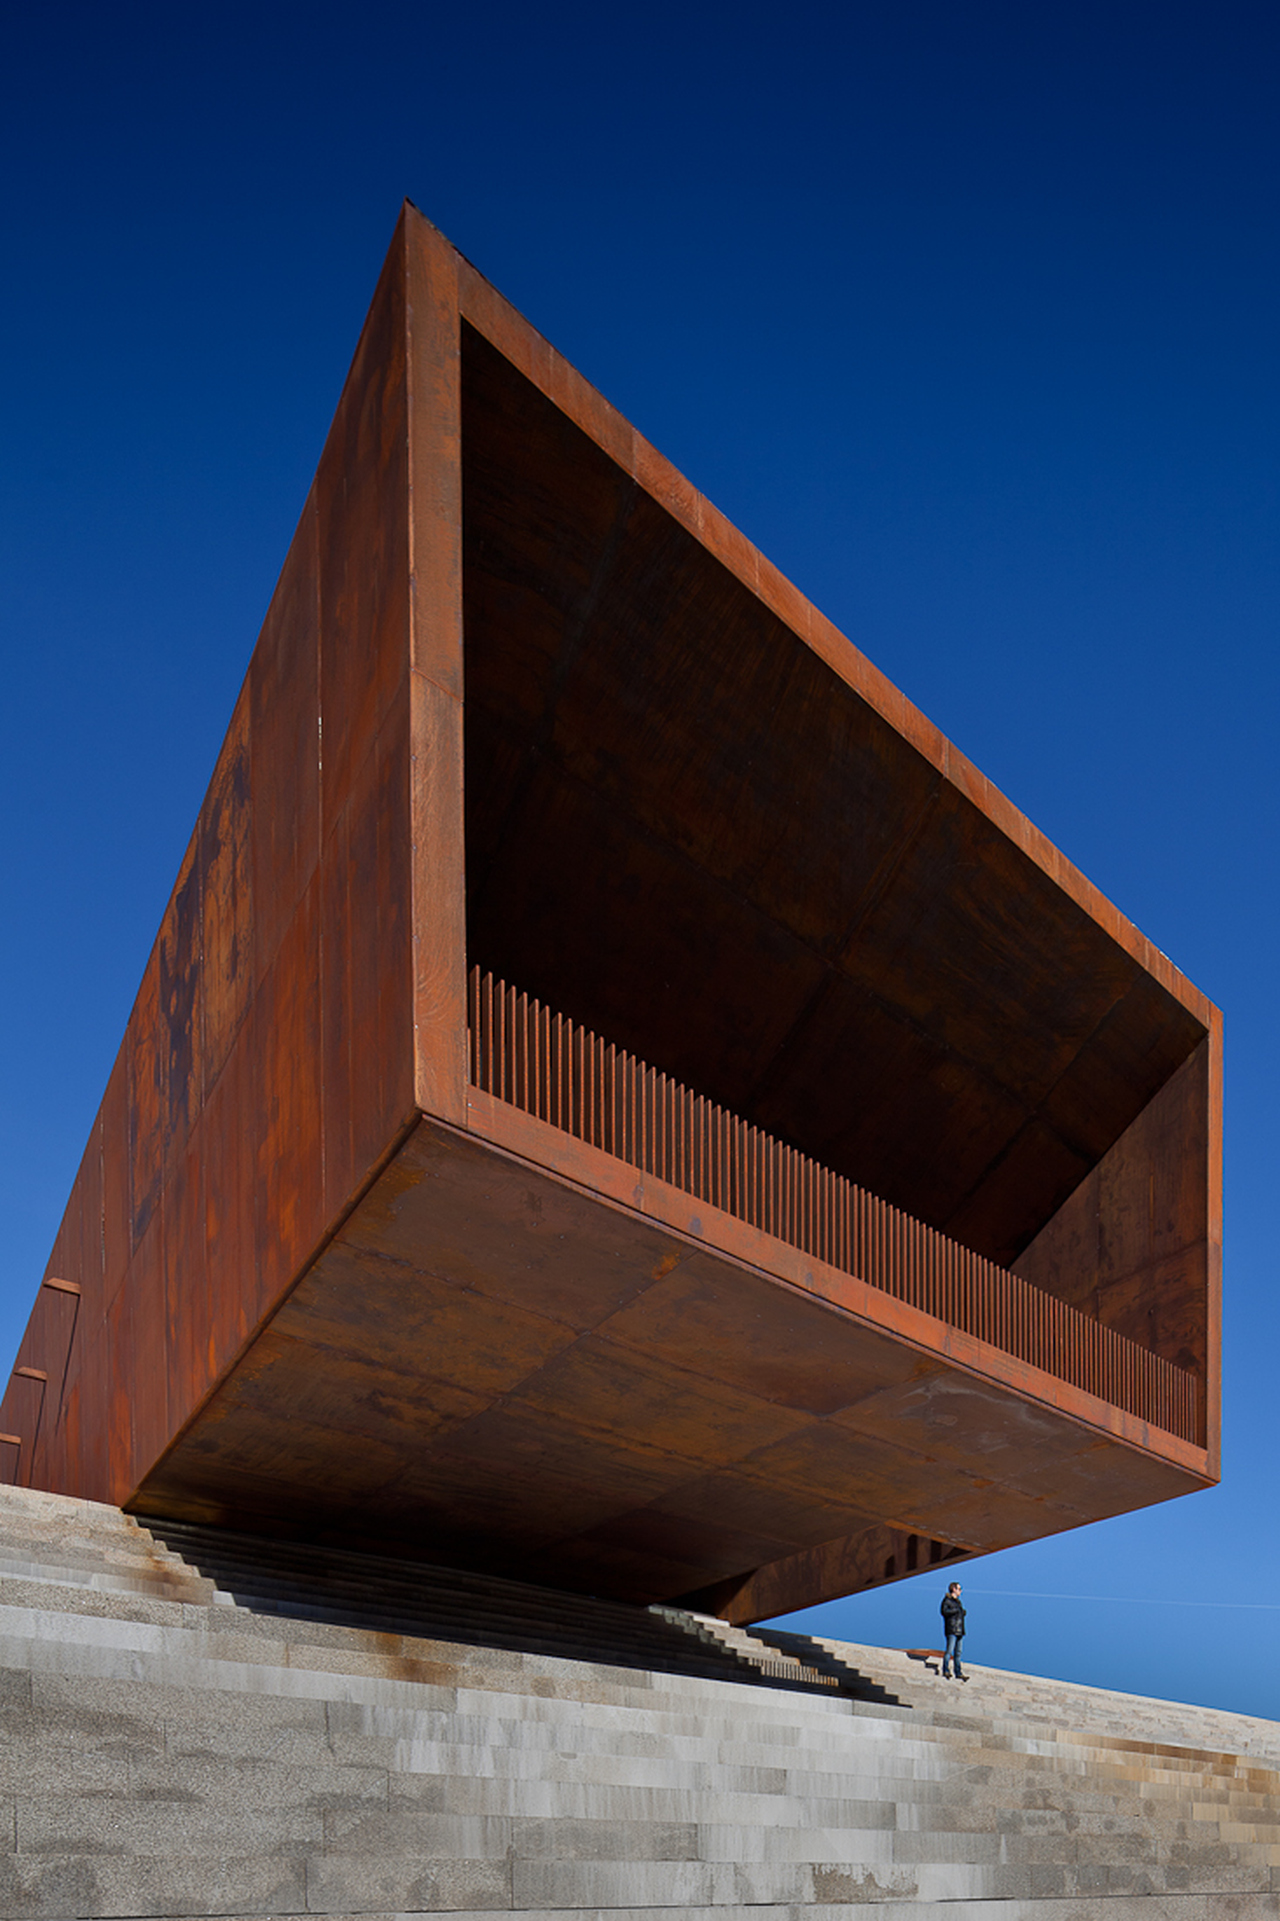 aco corten tag archdaily brasil. Black Bedroom Furniture Sets. Home Design Ideas